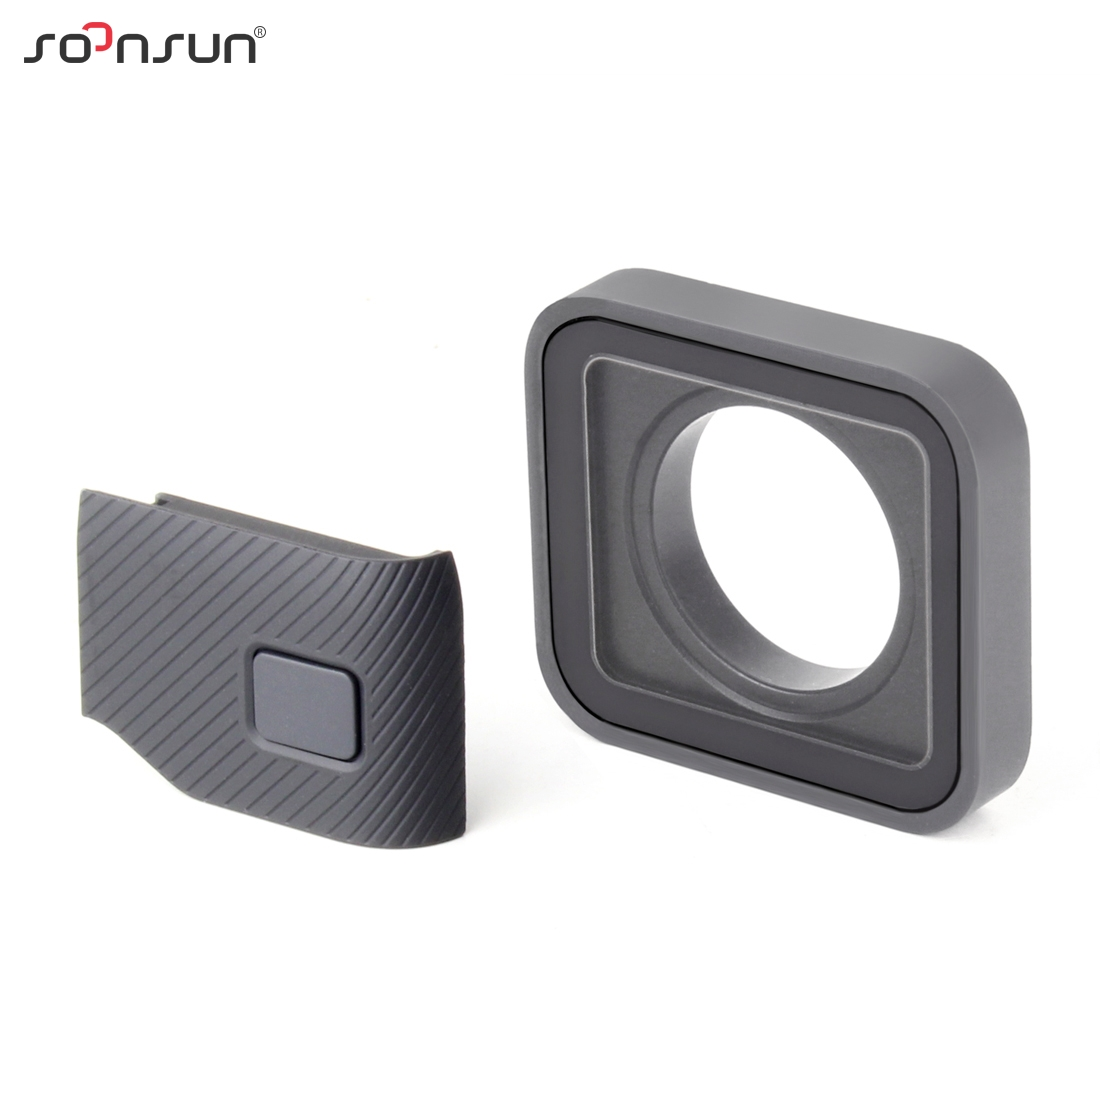 SOONSUN Protective Lens Replacement Side Door Repair Parts USB C Mini HDMI Port Side Cover for GoPro HERO 7 6 5 Black CameraSports Camcorder Cases   -